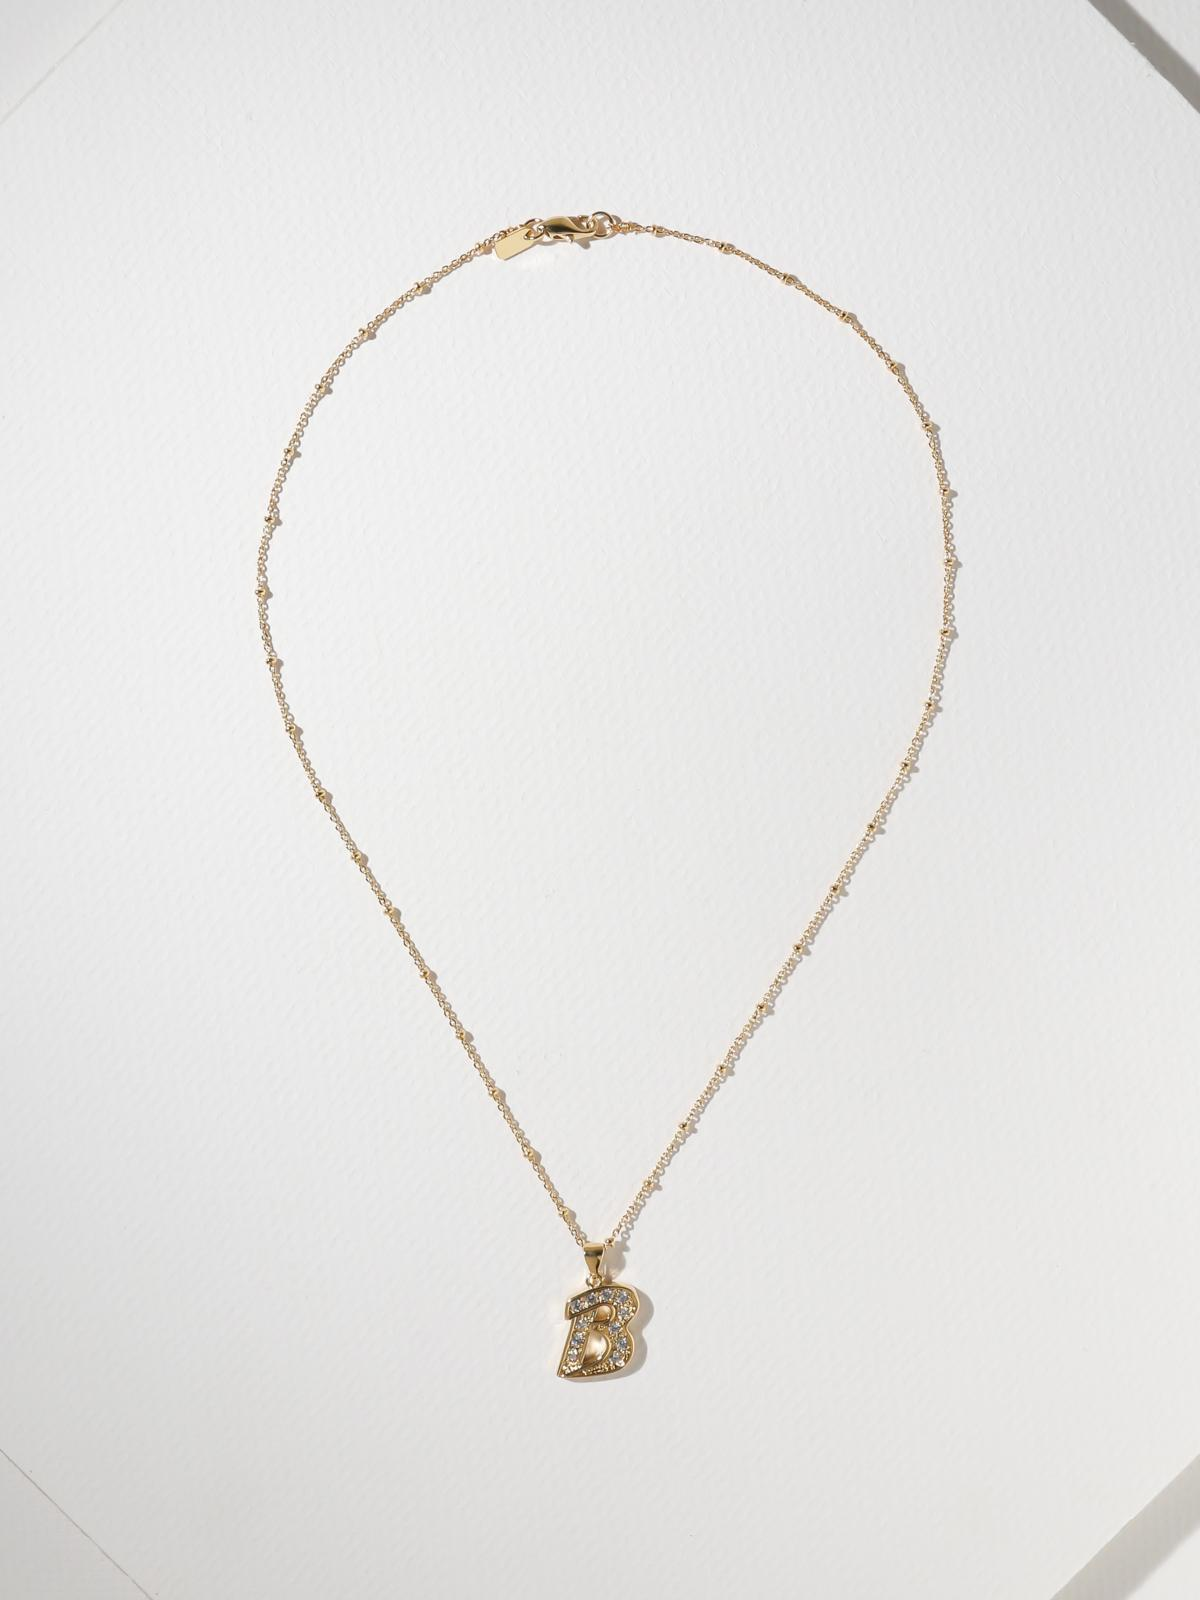 The Crystalized Initial Necklace